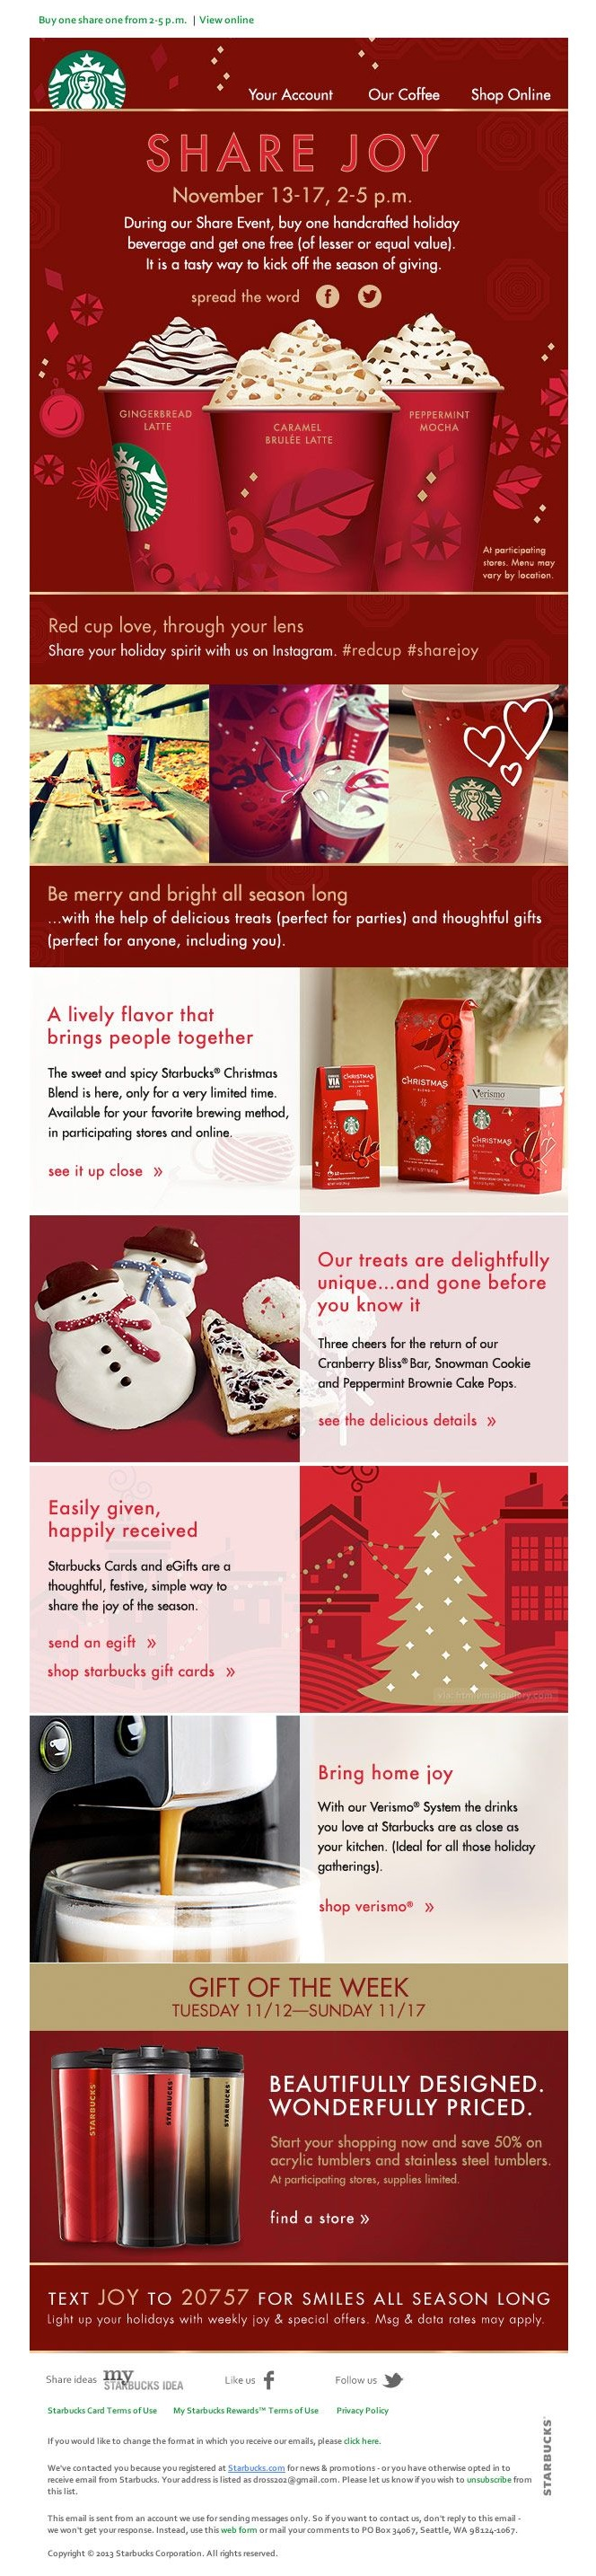 22 inspirational christmas html email templates here is a christmas html email template from starbucks it is beautifully designed it is all in red and it displays a collection of photos and maxwellsz